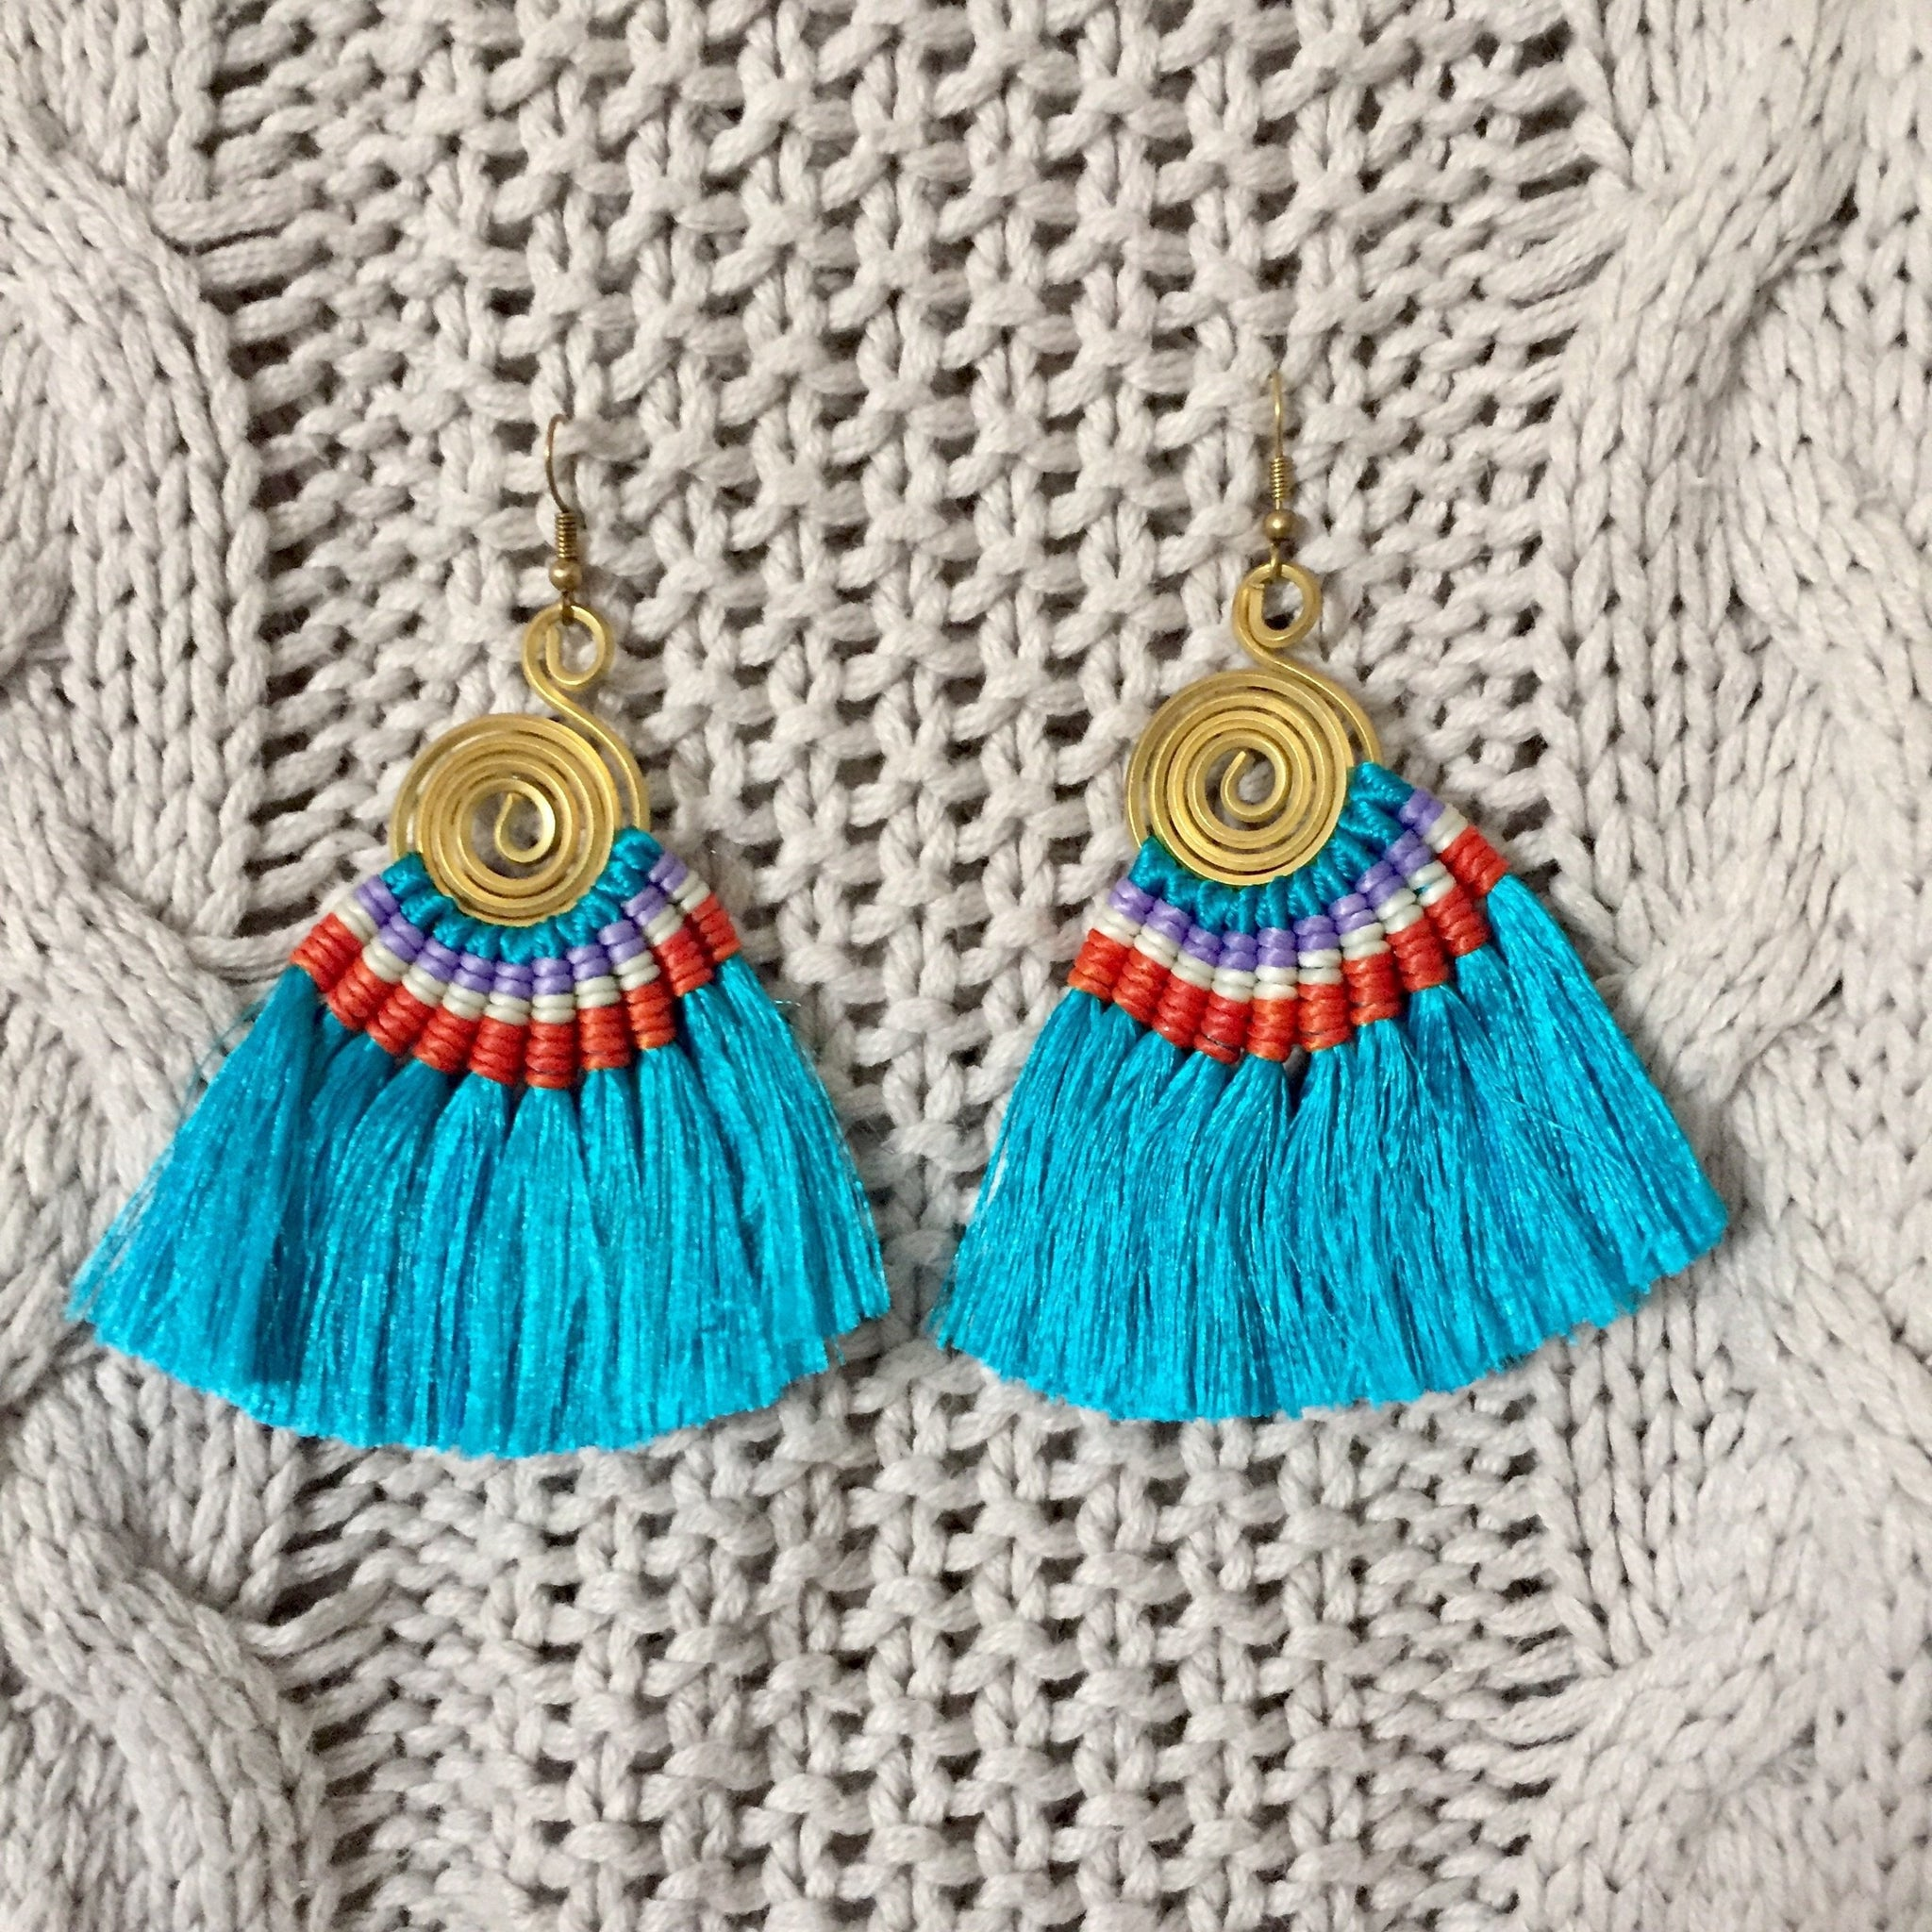 Hula Earrings - Turquoise - Sparkle Rock Pop